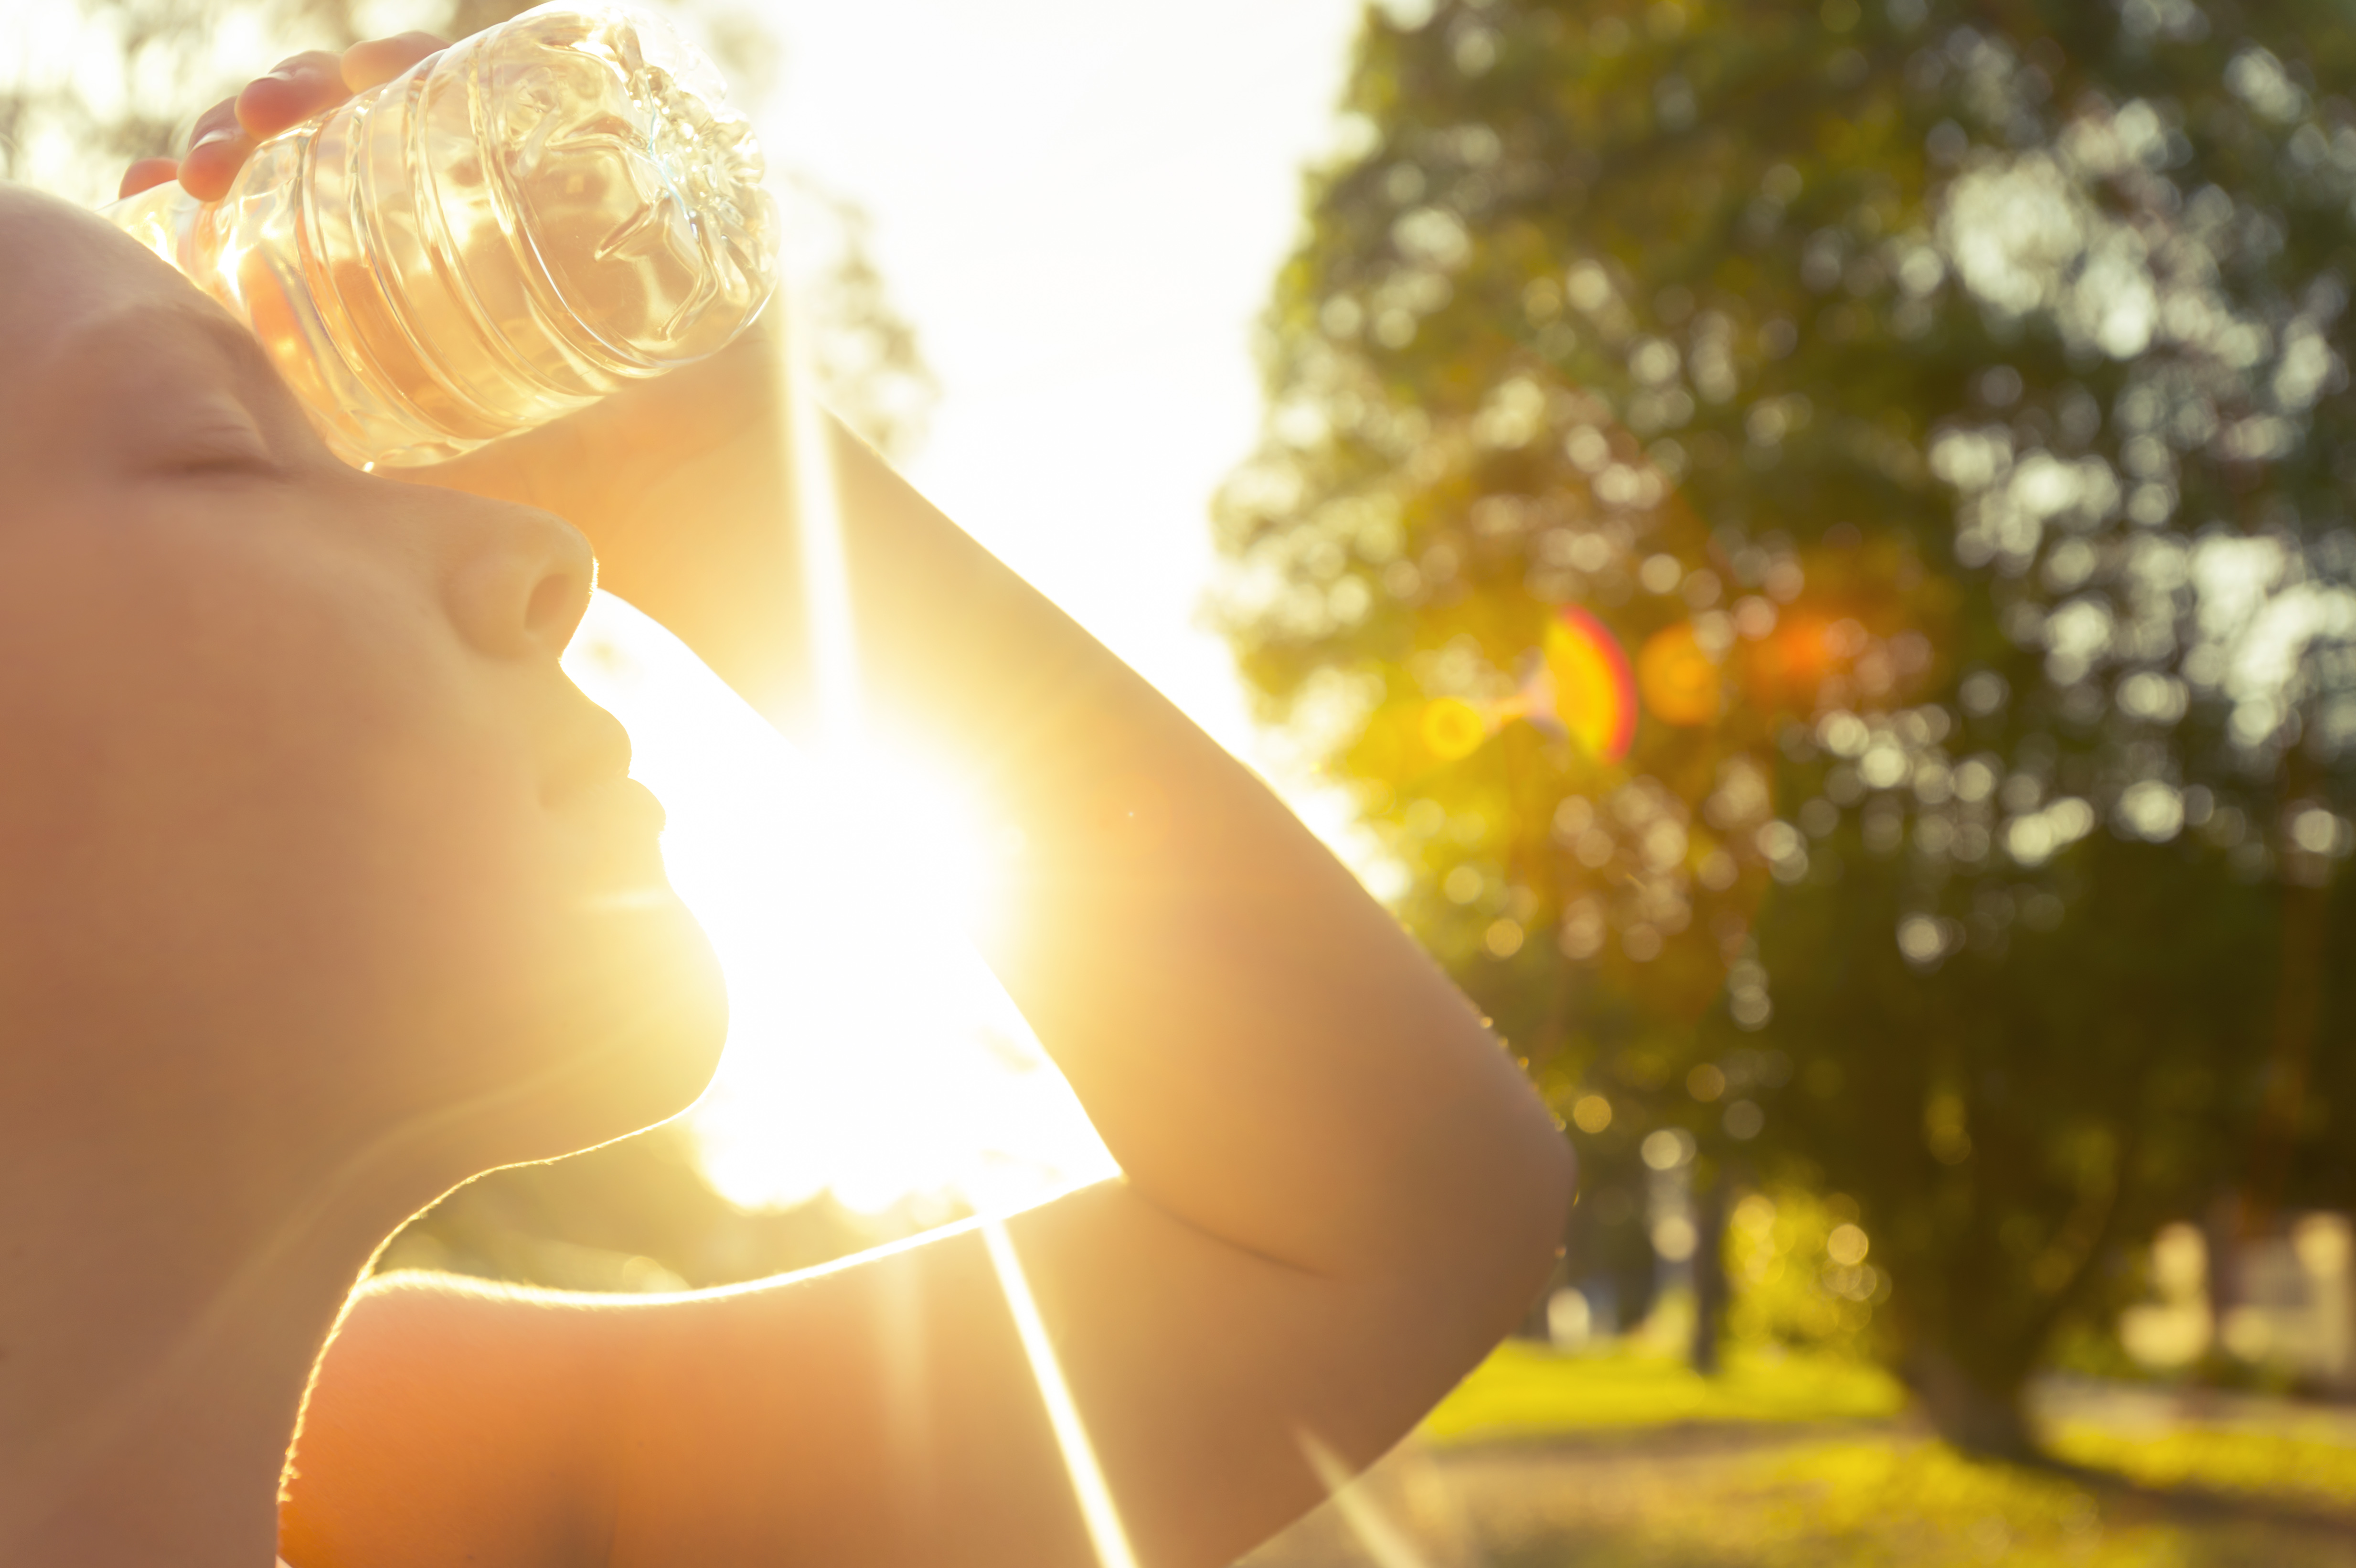 Woman using water bottle to cool down. Fitness and wellbeing concept with female athlete cooling down on a city street. She is holding a water bottle to her head to cool down. The sun is low creating long shadows and some lens flare.